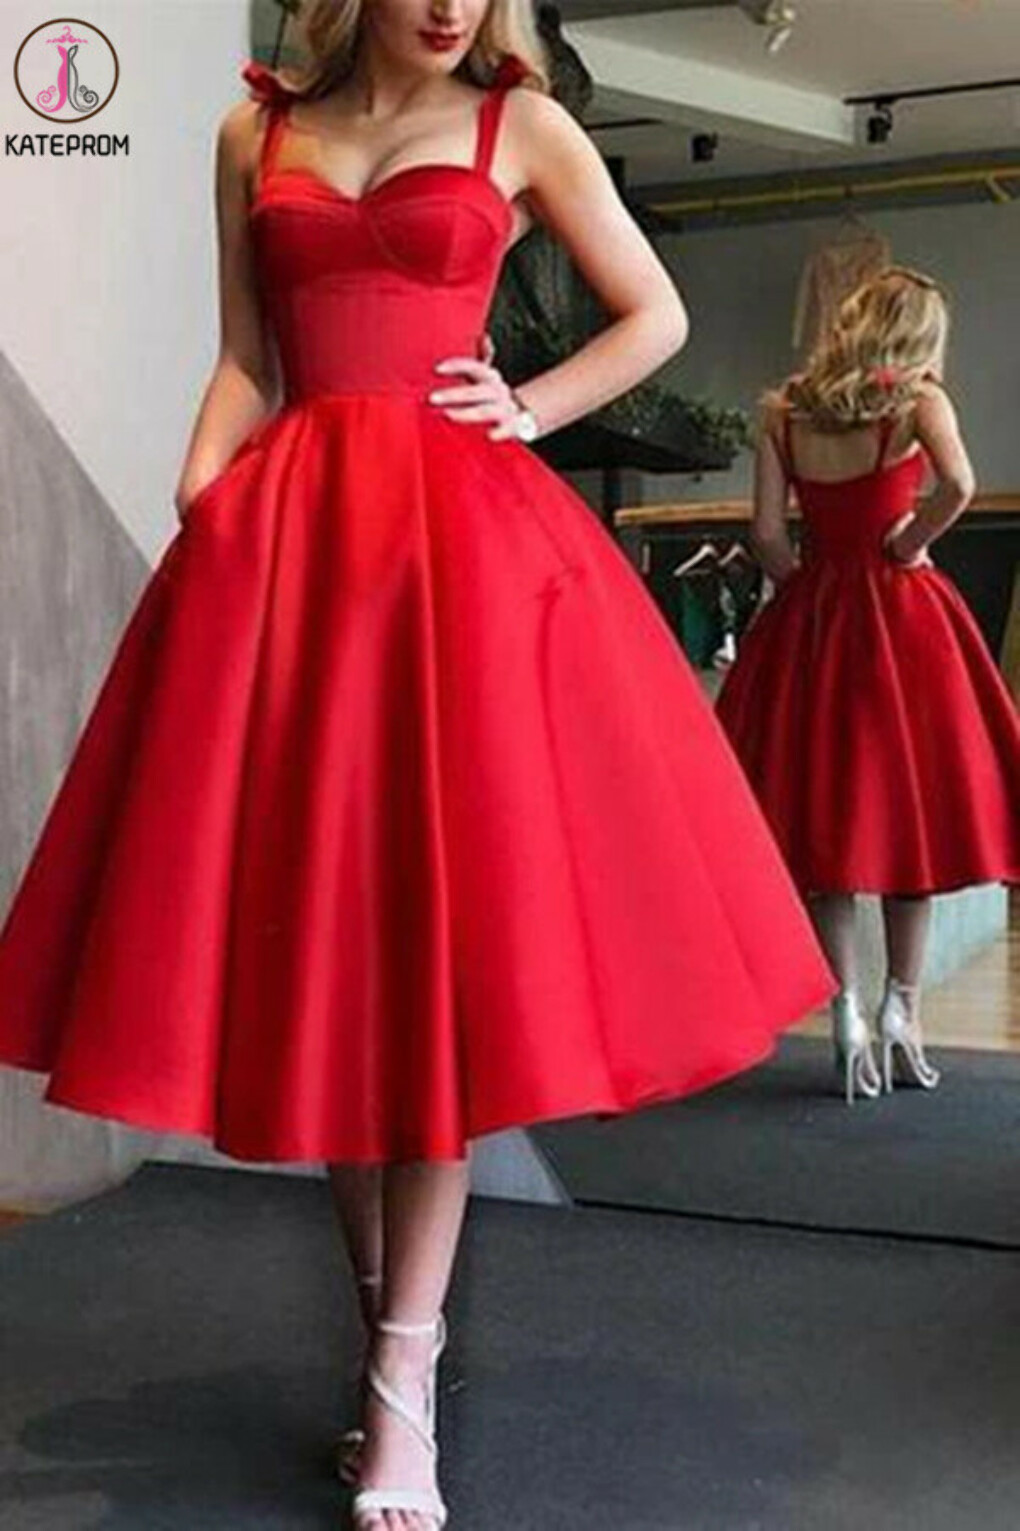 Kateprom A-Line Red Spaghetti Straps Tea-Length Satin Prom Homecoming Dresses with Pocket KPH0541